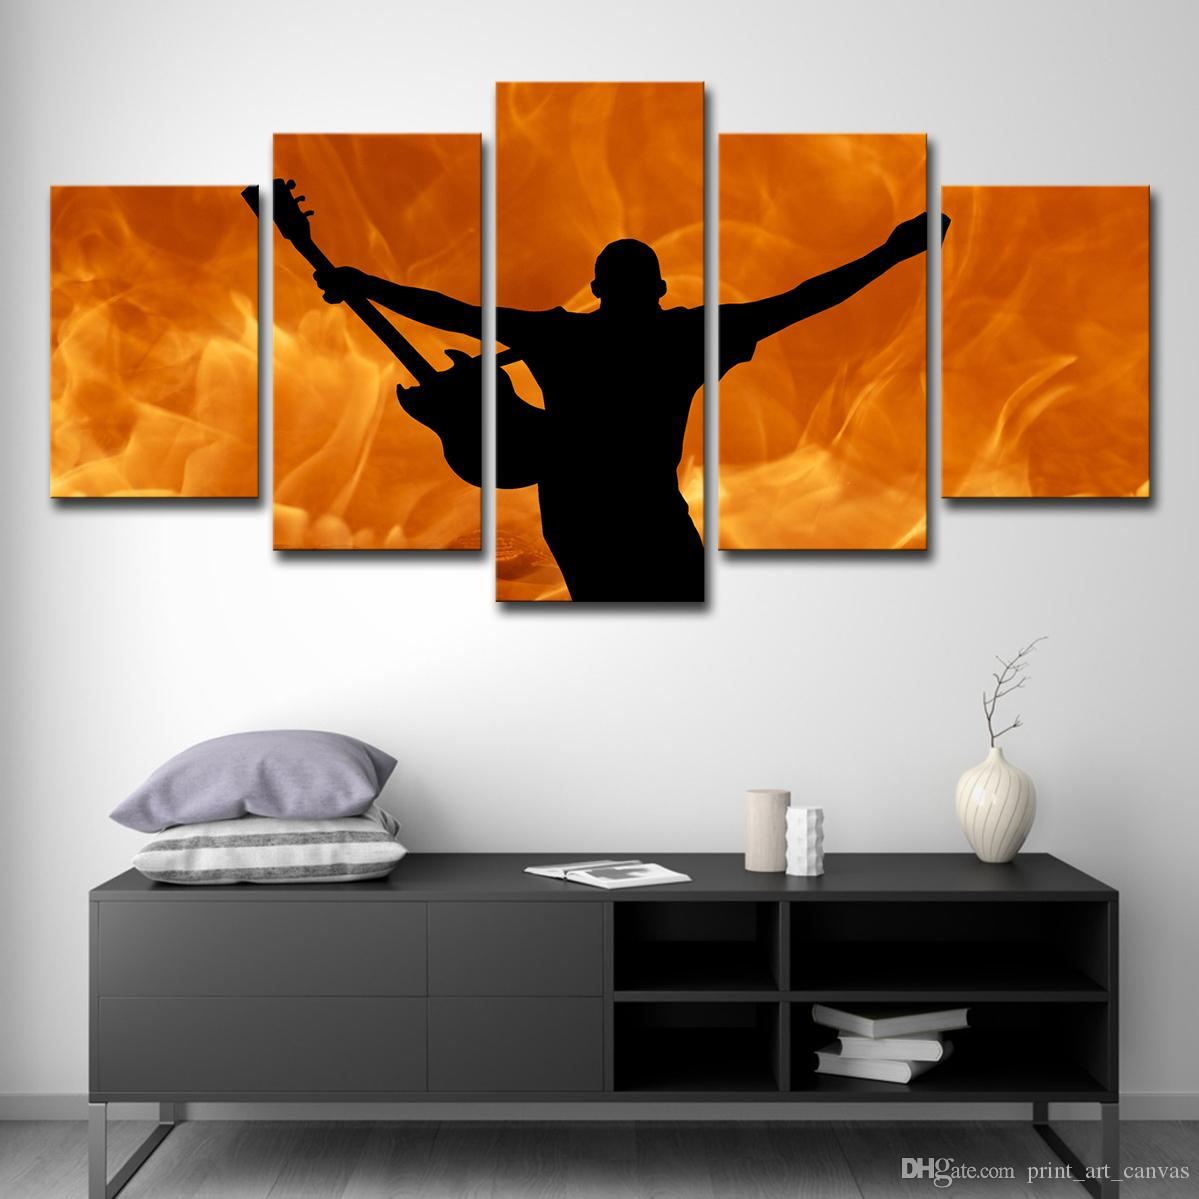 HD Printed 5 Piece Canvas Art Hot Guitar Player Fire Painting Fire Poster Wall Pictures for Living Room Free Shipping